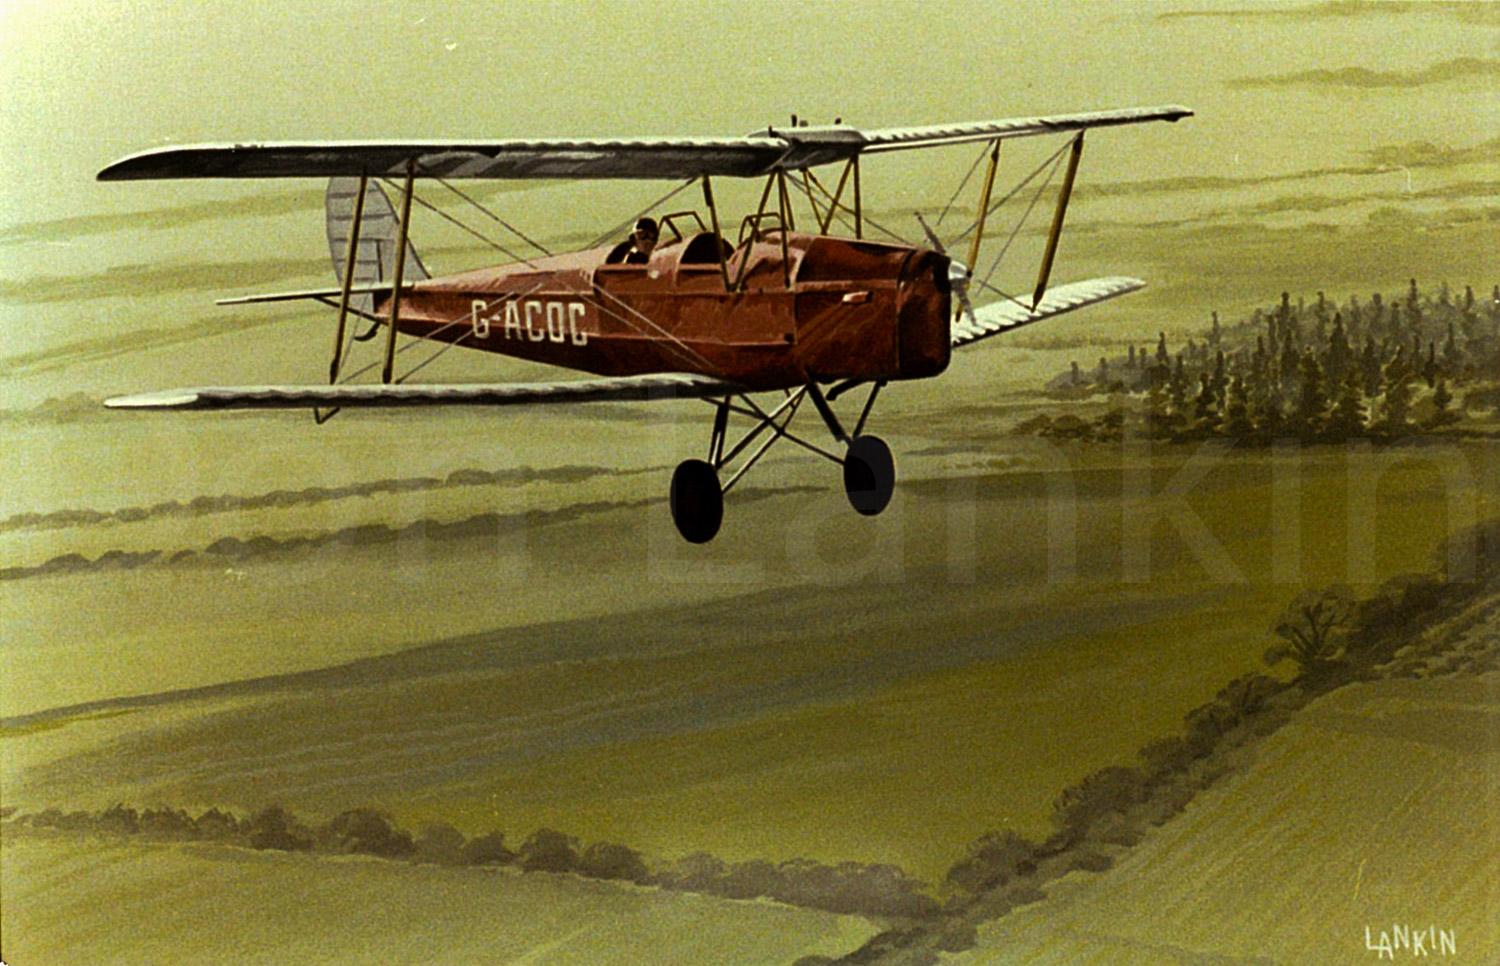 de Havilland Tiger Moth, a 1930's design. Over 8,800 were built. Many privately owned, are still  in use today.